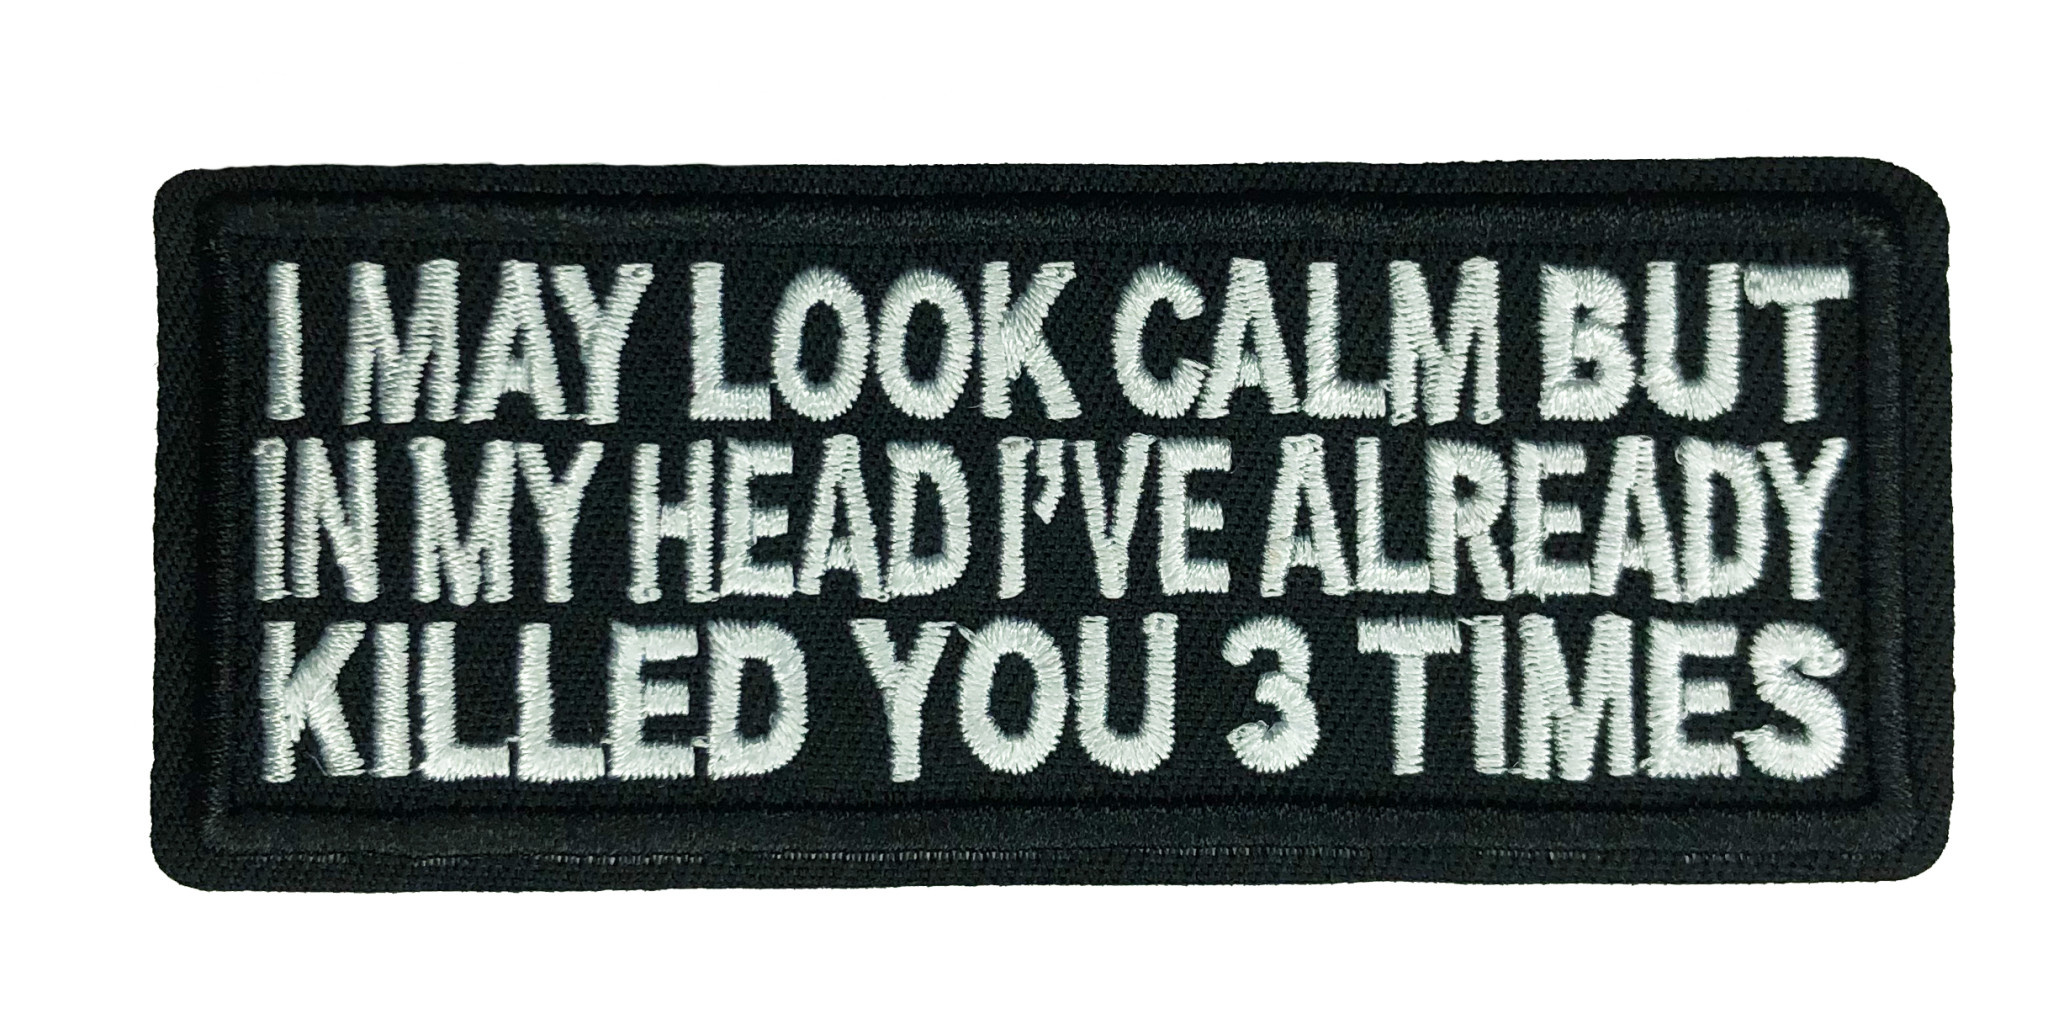 THE SHOP 8 STATEMENT PATCHES-7